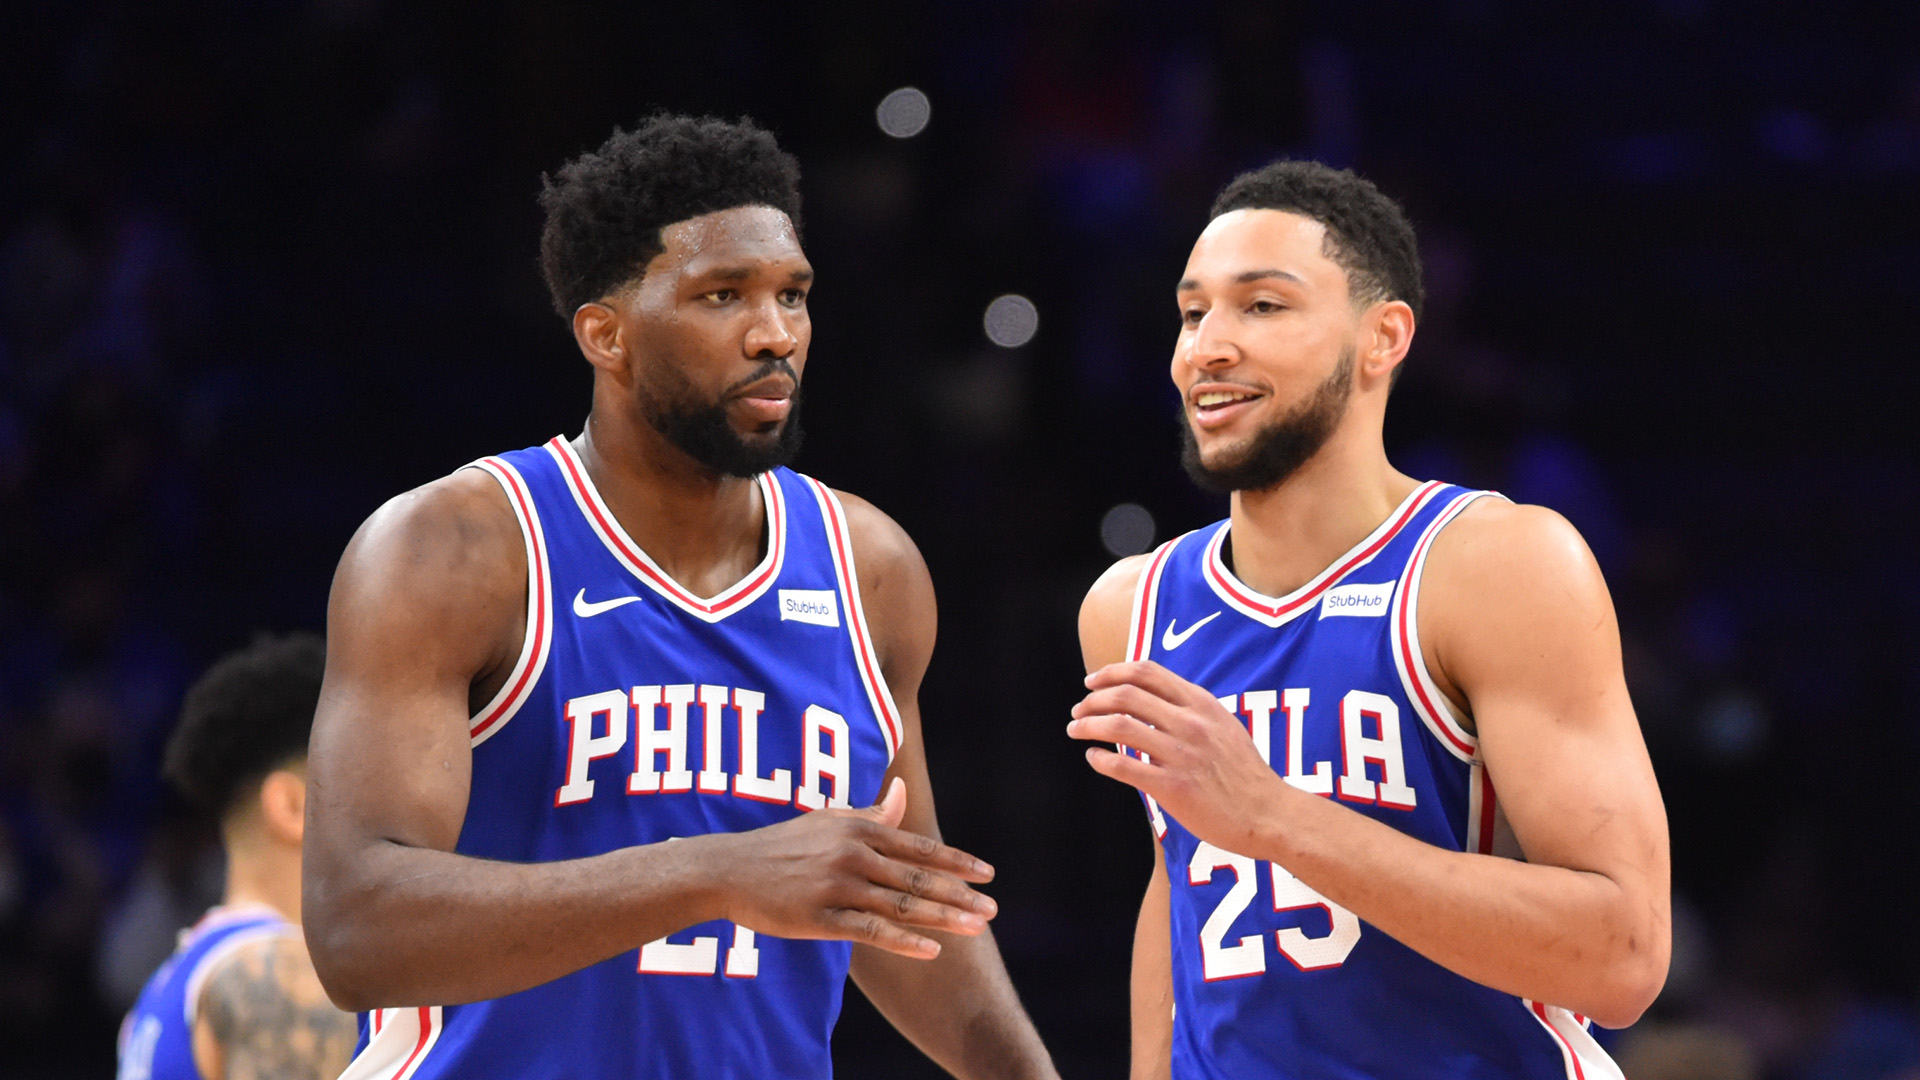 Power Rankings, Week 21: Sixers finish at No. 1 as season wraps up